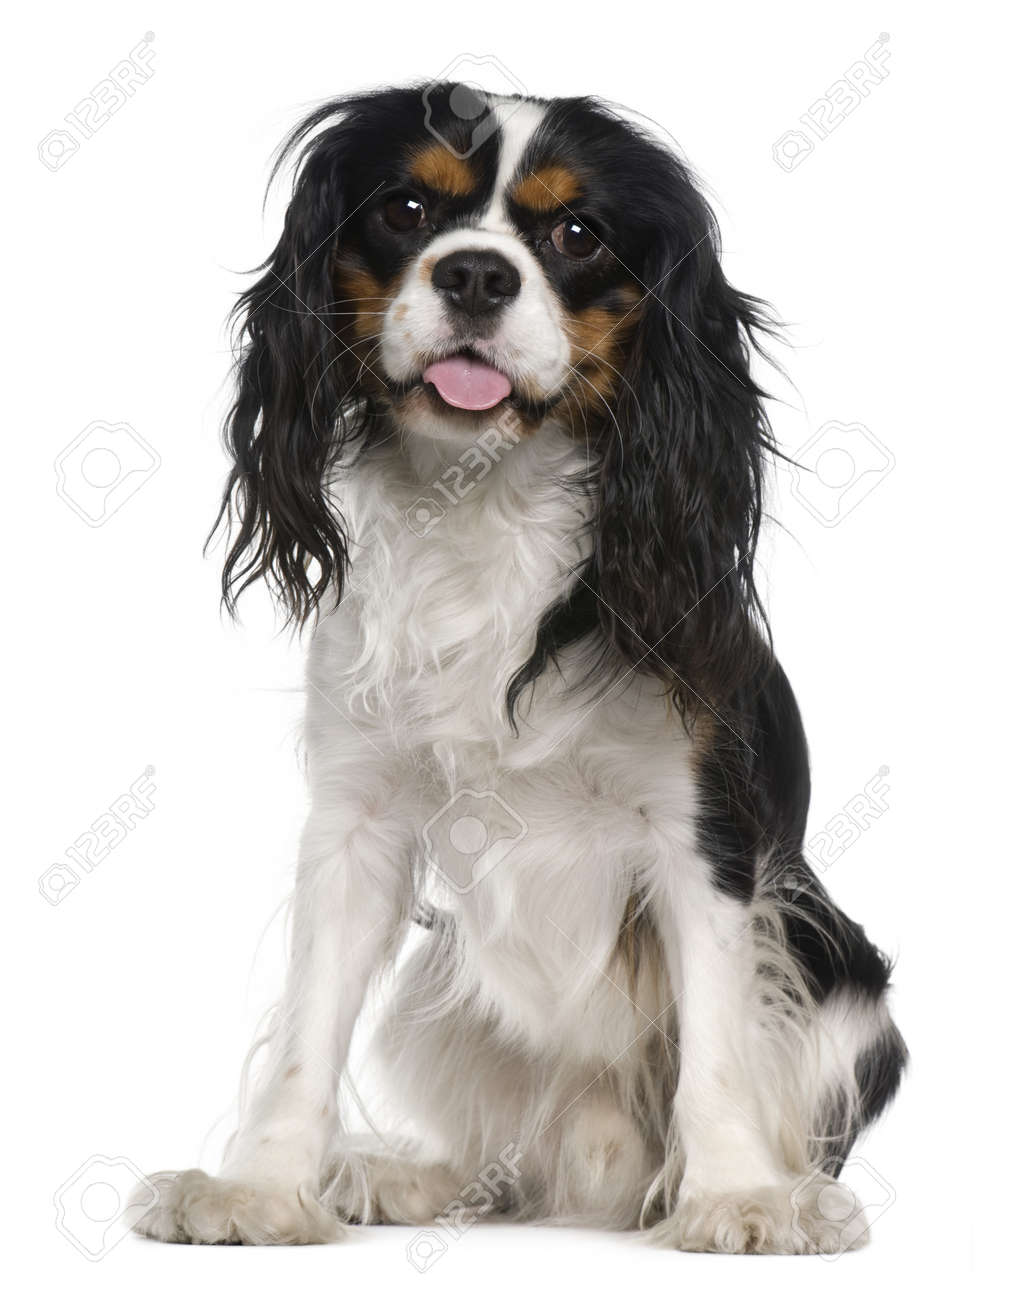 Cavalier king Charles spaniel, 1 year old, sitting in front of white background Stock Photo - 7251114